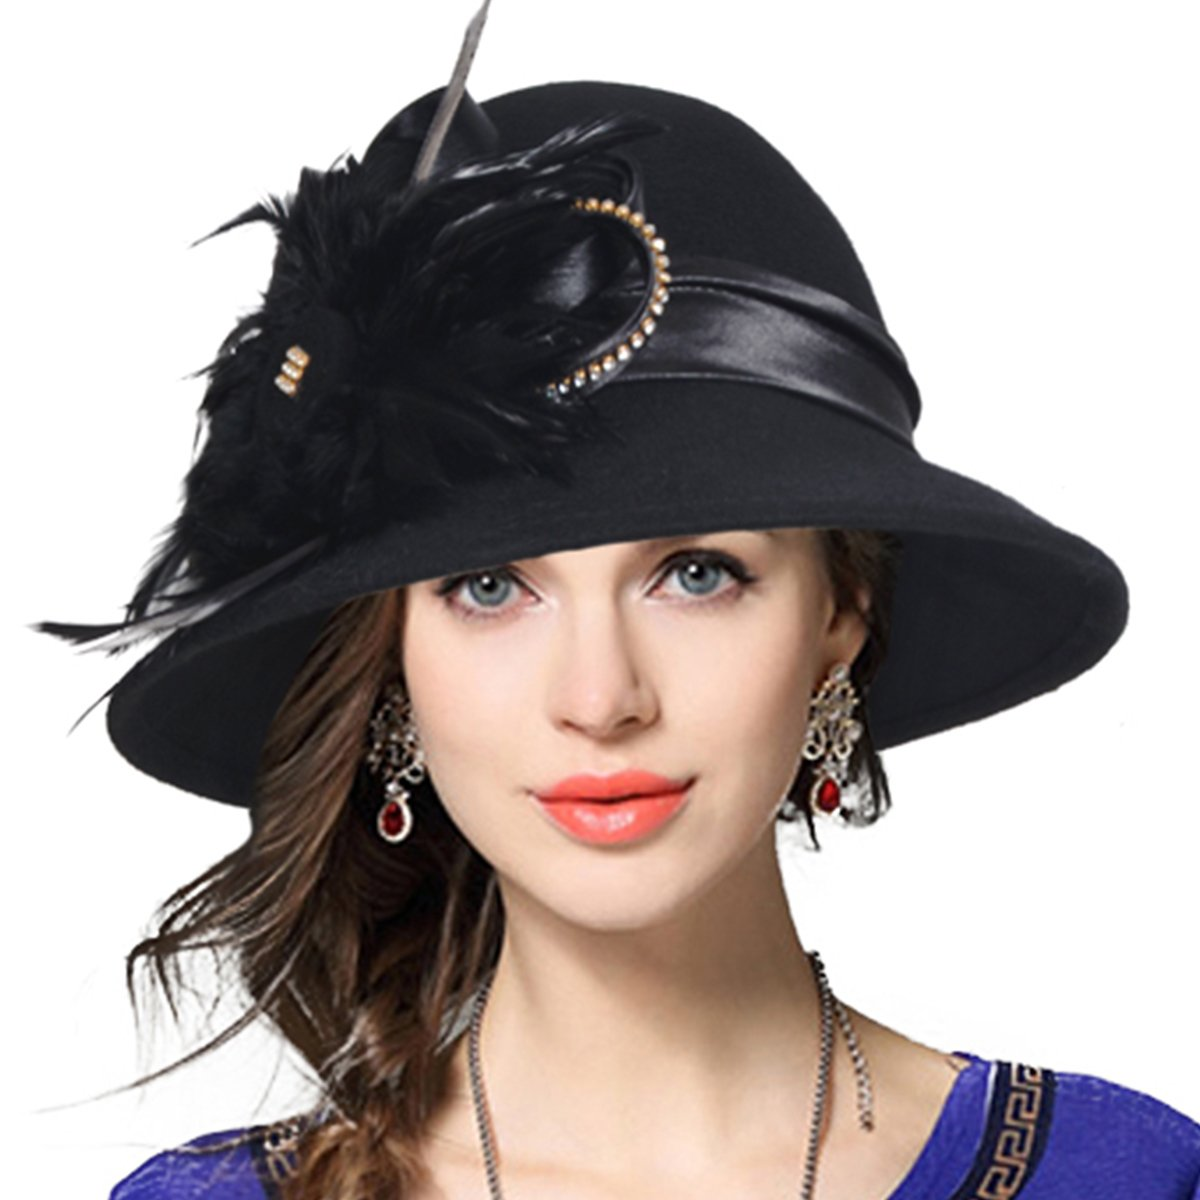 Retro Vintage Style Hats Womens Wool Church Dress Cloche Hat Plumy Felt Bucket Winter Hat $30.99 AT vintagedancer.com